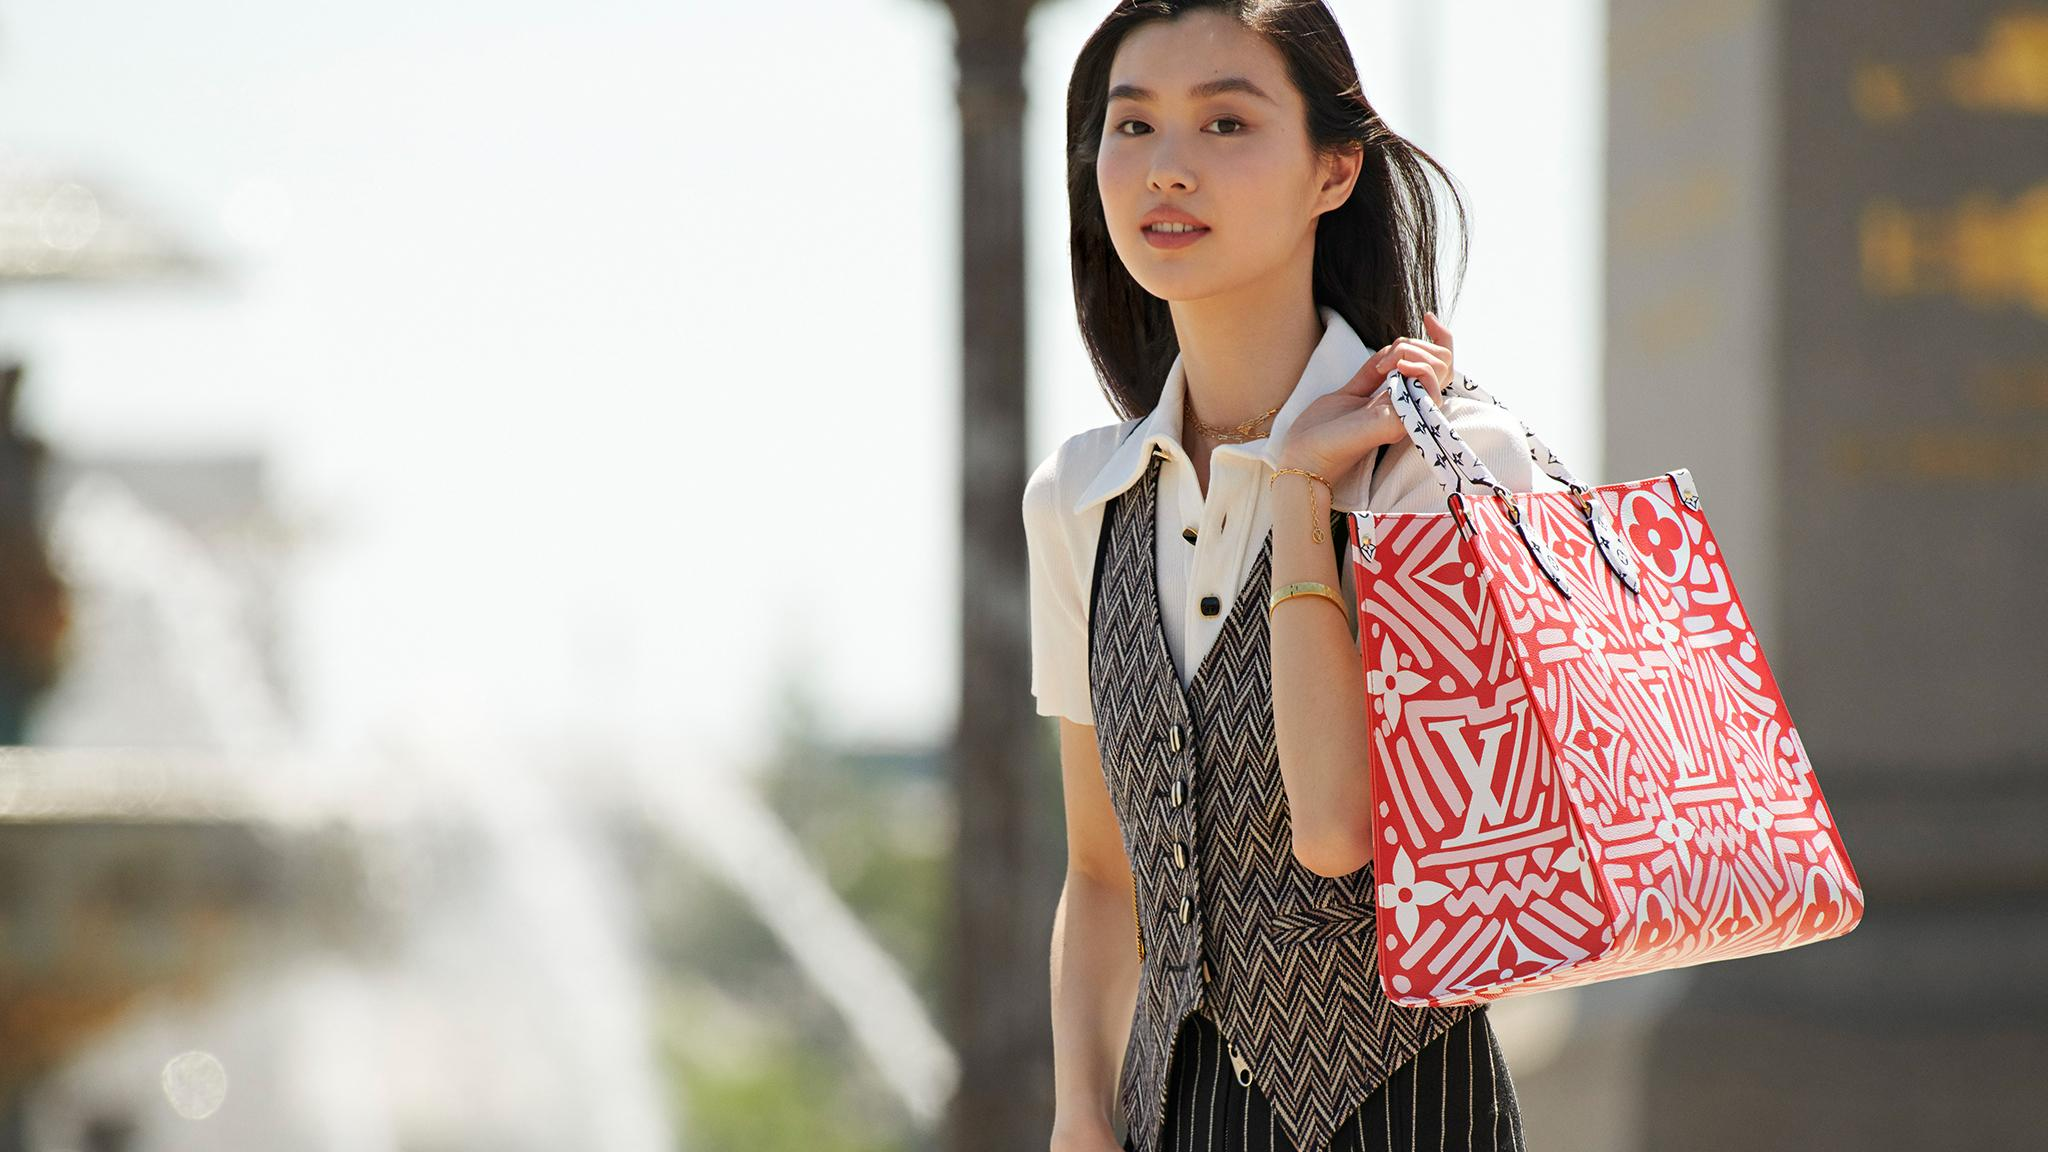 Louis Vuitton campaign for Chinese Valentine's day